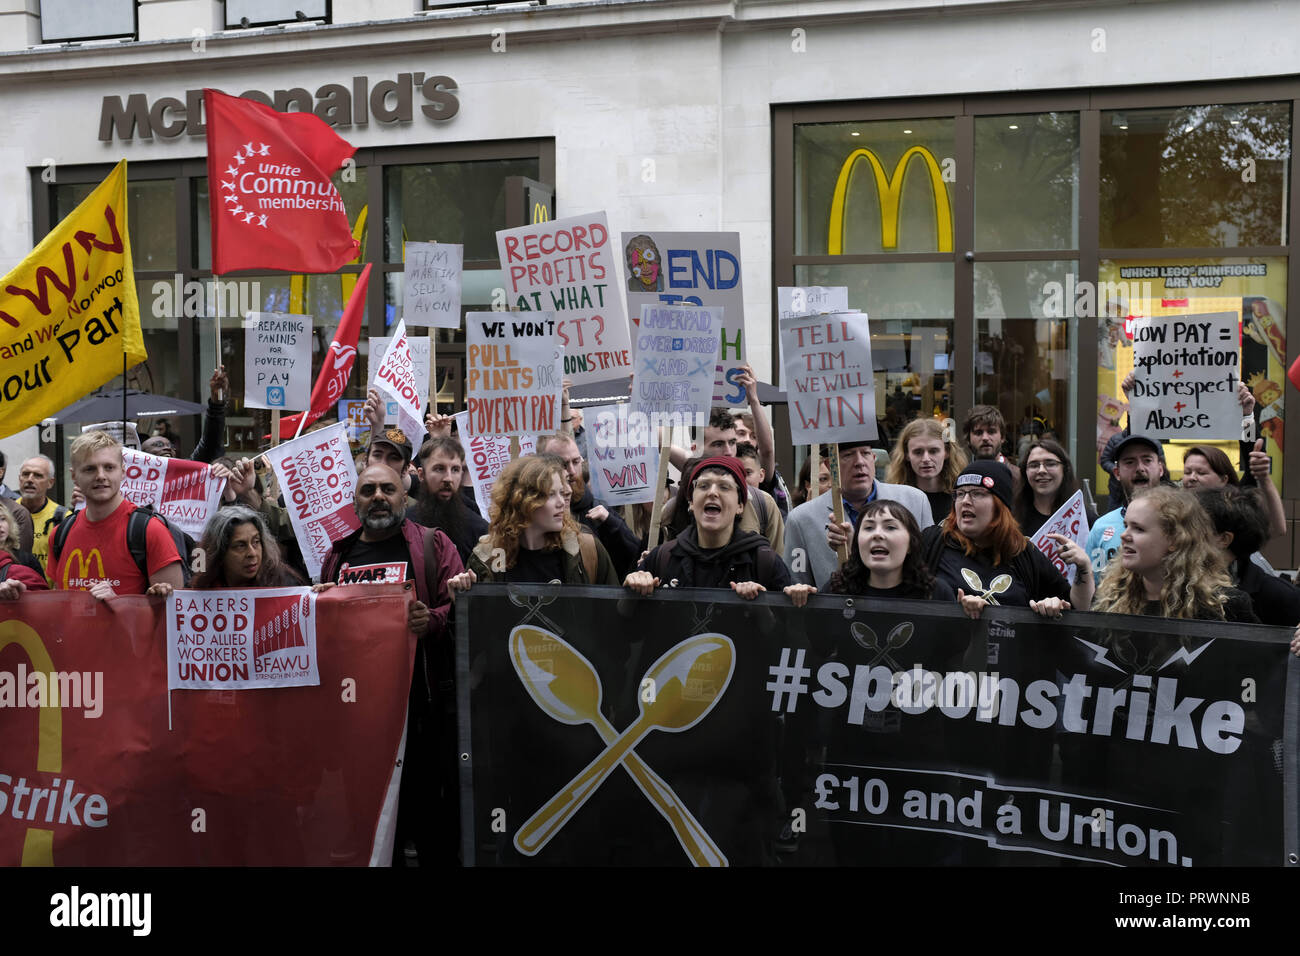 London, Greater London, UK. 5th Oct, 2018. Protesters seen holding banners and flags outside Mc Donalds during the protest.Wetherspoons, TGI Fridays, and McDonald's workers rally together in London to demand better working conditions and a fair pay in the hospitality industry. Credit: Andres Pantoja/SOPA Images/ZUMA Wire/Alamy Live News - Stock Image